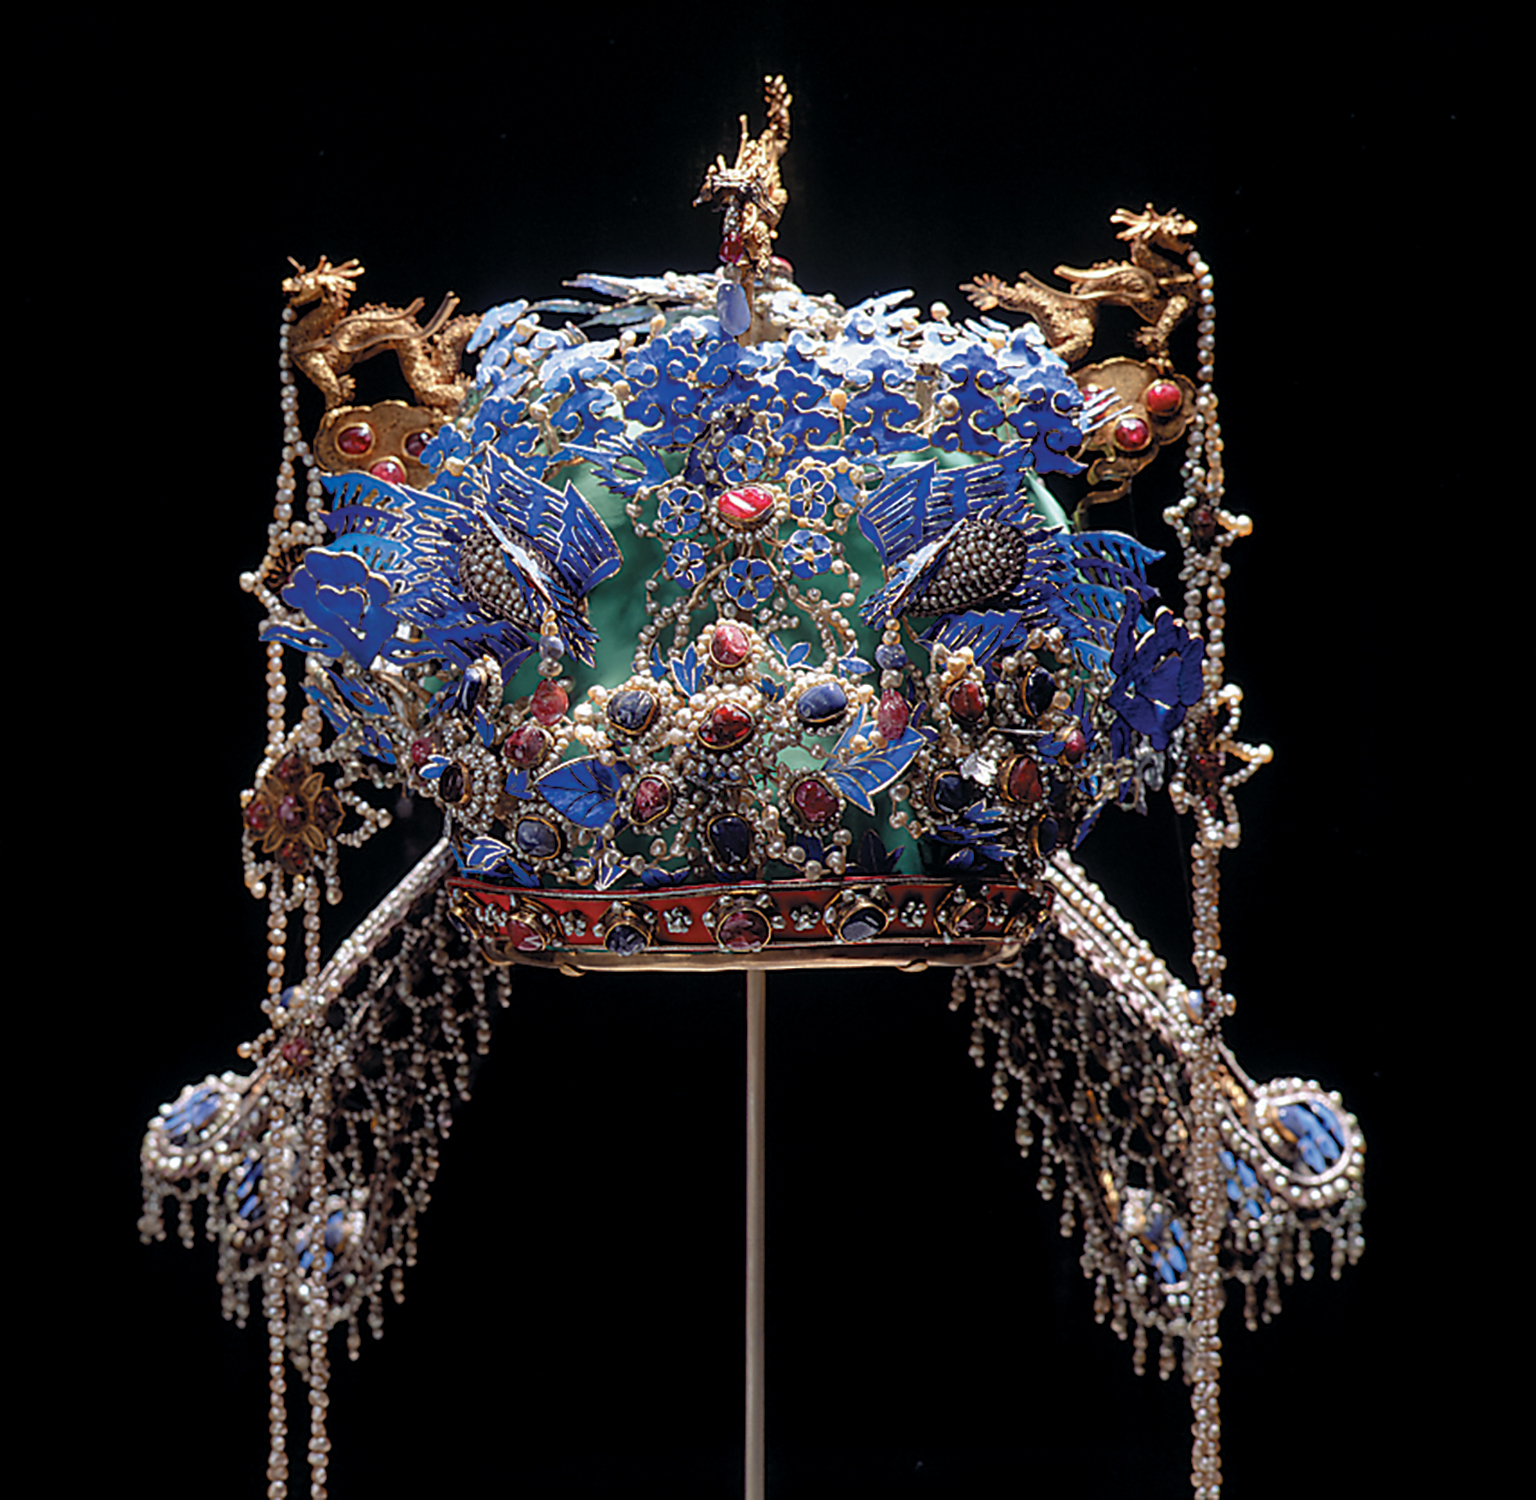 A very elaborate, square crown.